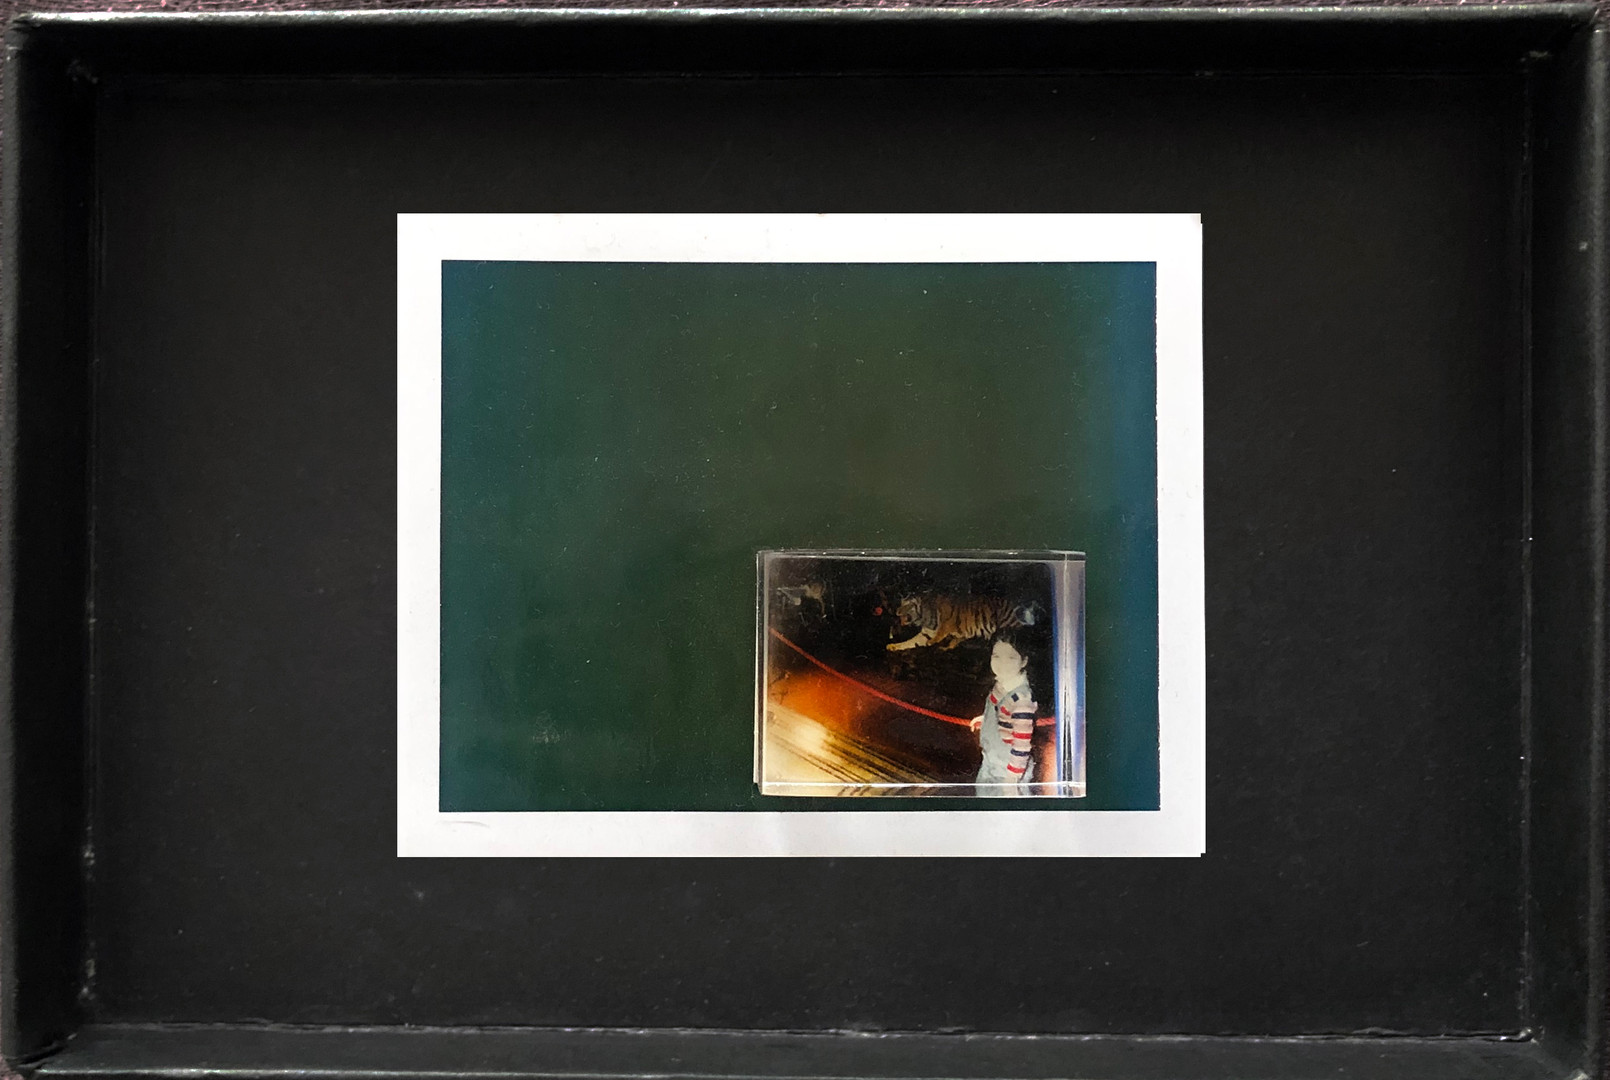 """Series X-Pola """"Eattons"""" 2019 8/10cm mounted Plexiglass on Polaroid Edition 1/1 NIS 1,000 per object Sold out"""